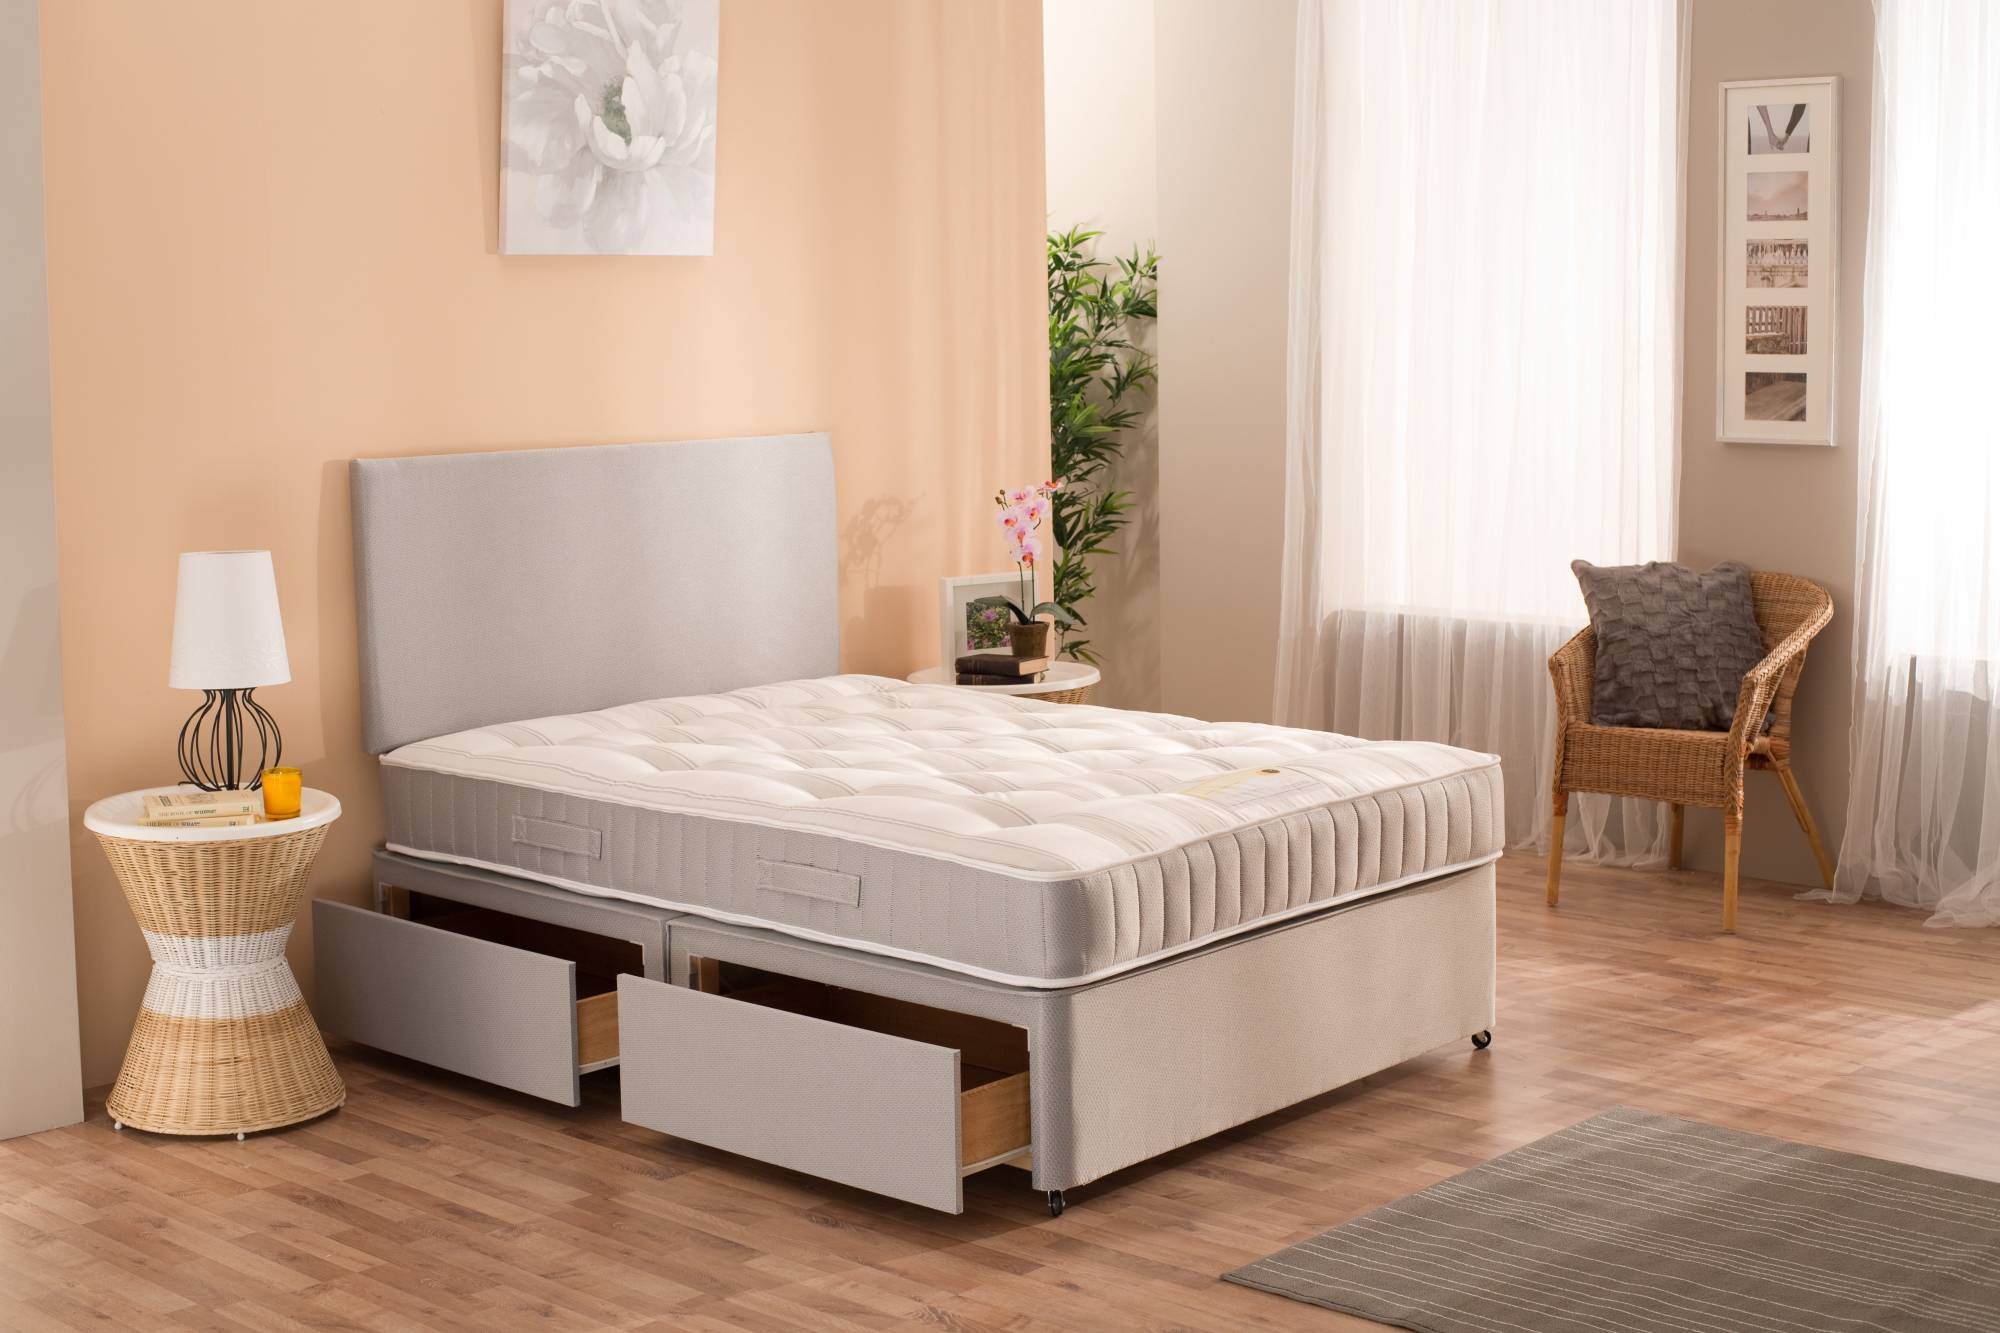 Moonraker Beds Palermo